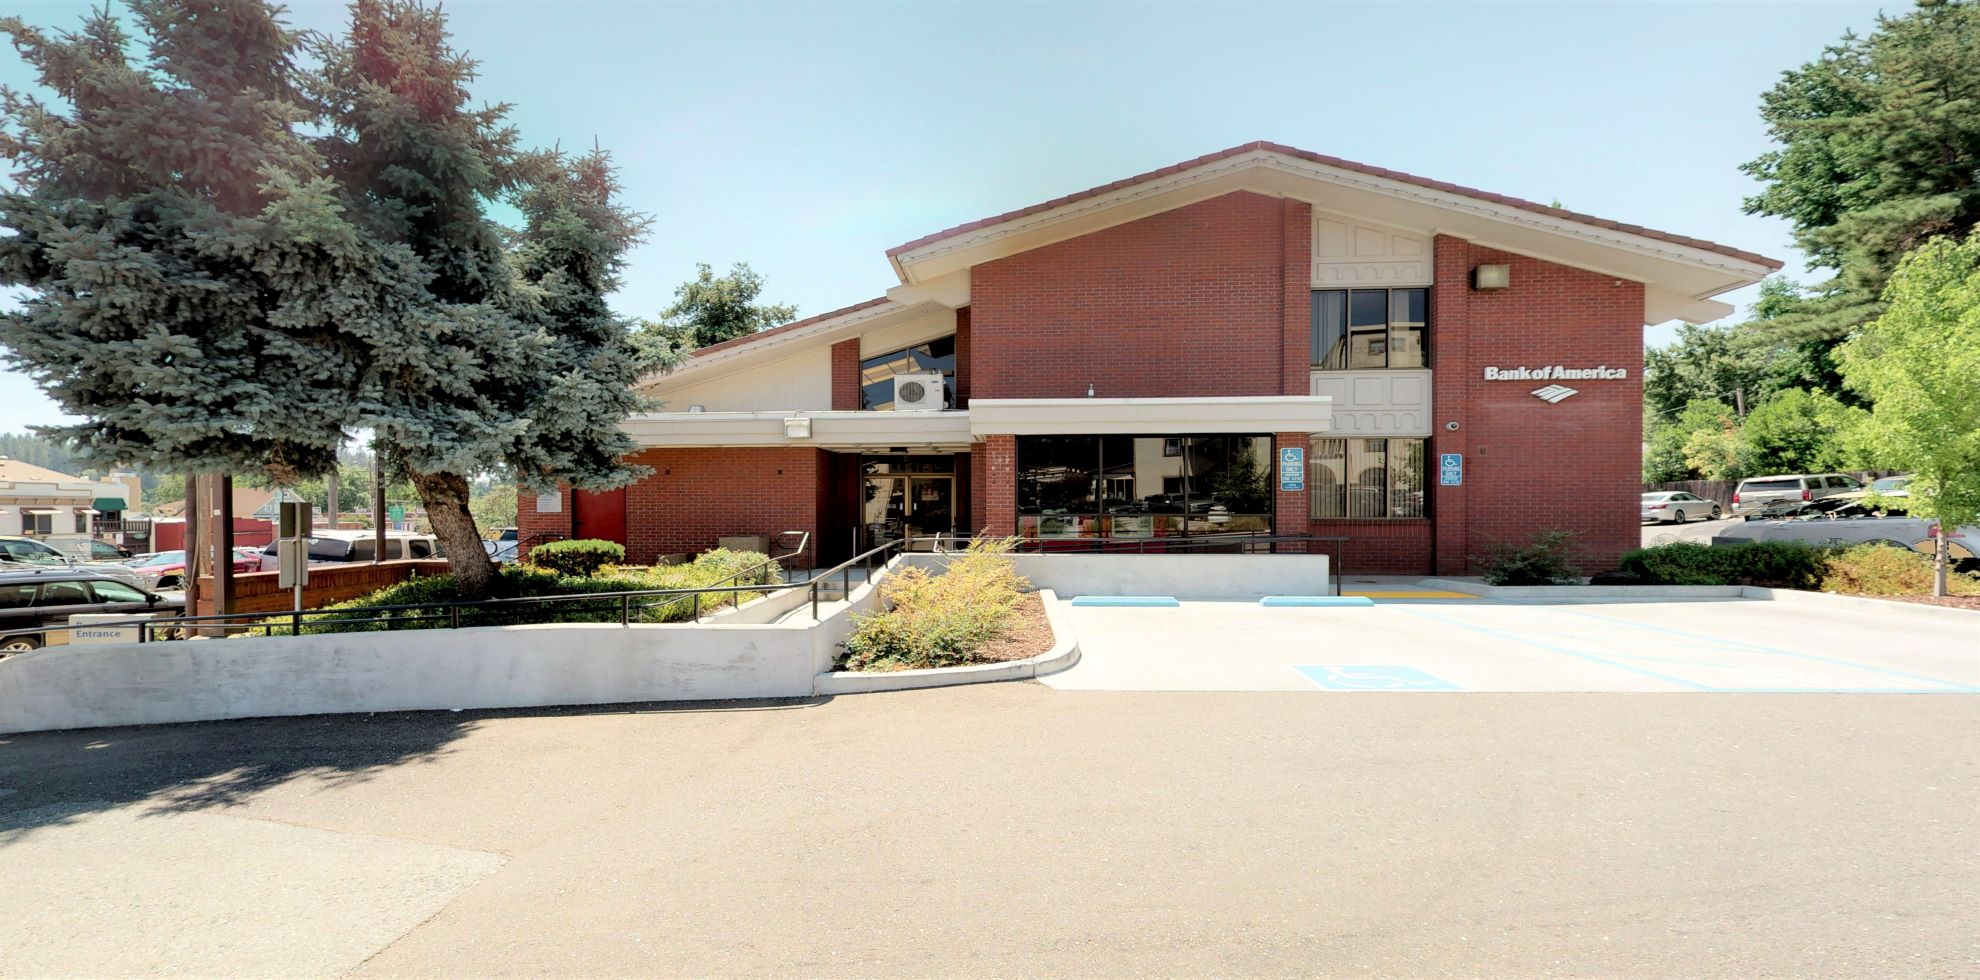 Bank of America financial center with drive-thru ATM   134 S Church St, Grass Valley, CA 95945